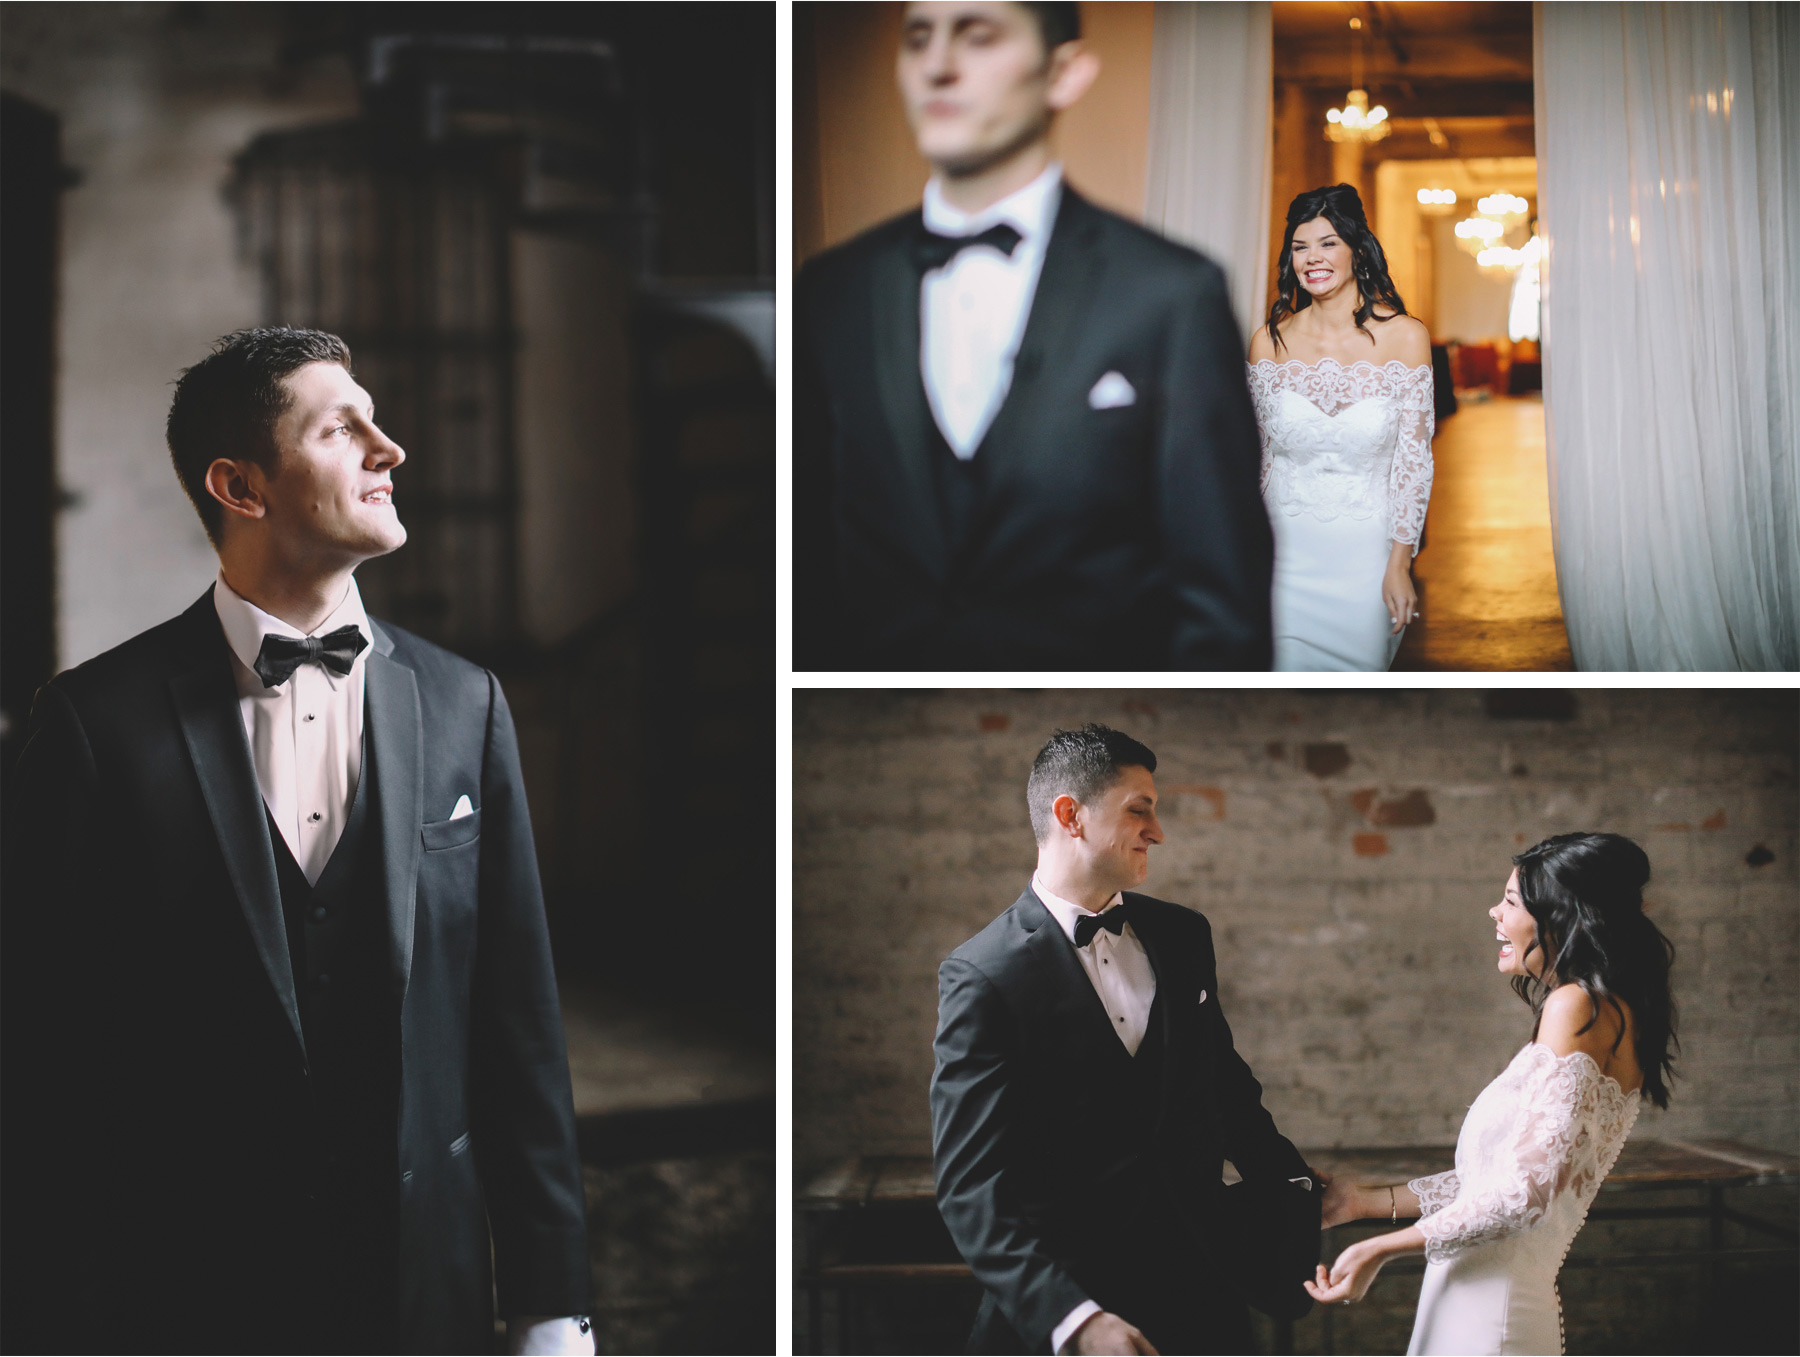 03-Minneapolis-Minnesota-Wedding-Photographer-by-Vick-Photography-Aria-First-Look-Maggie-and-Matt.jpg